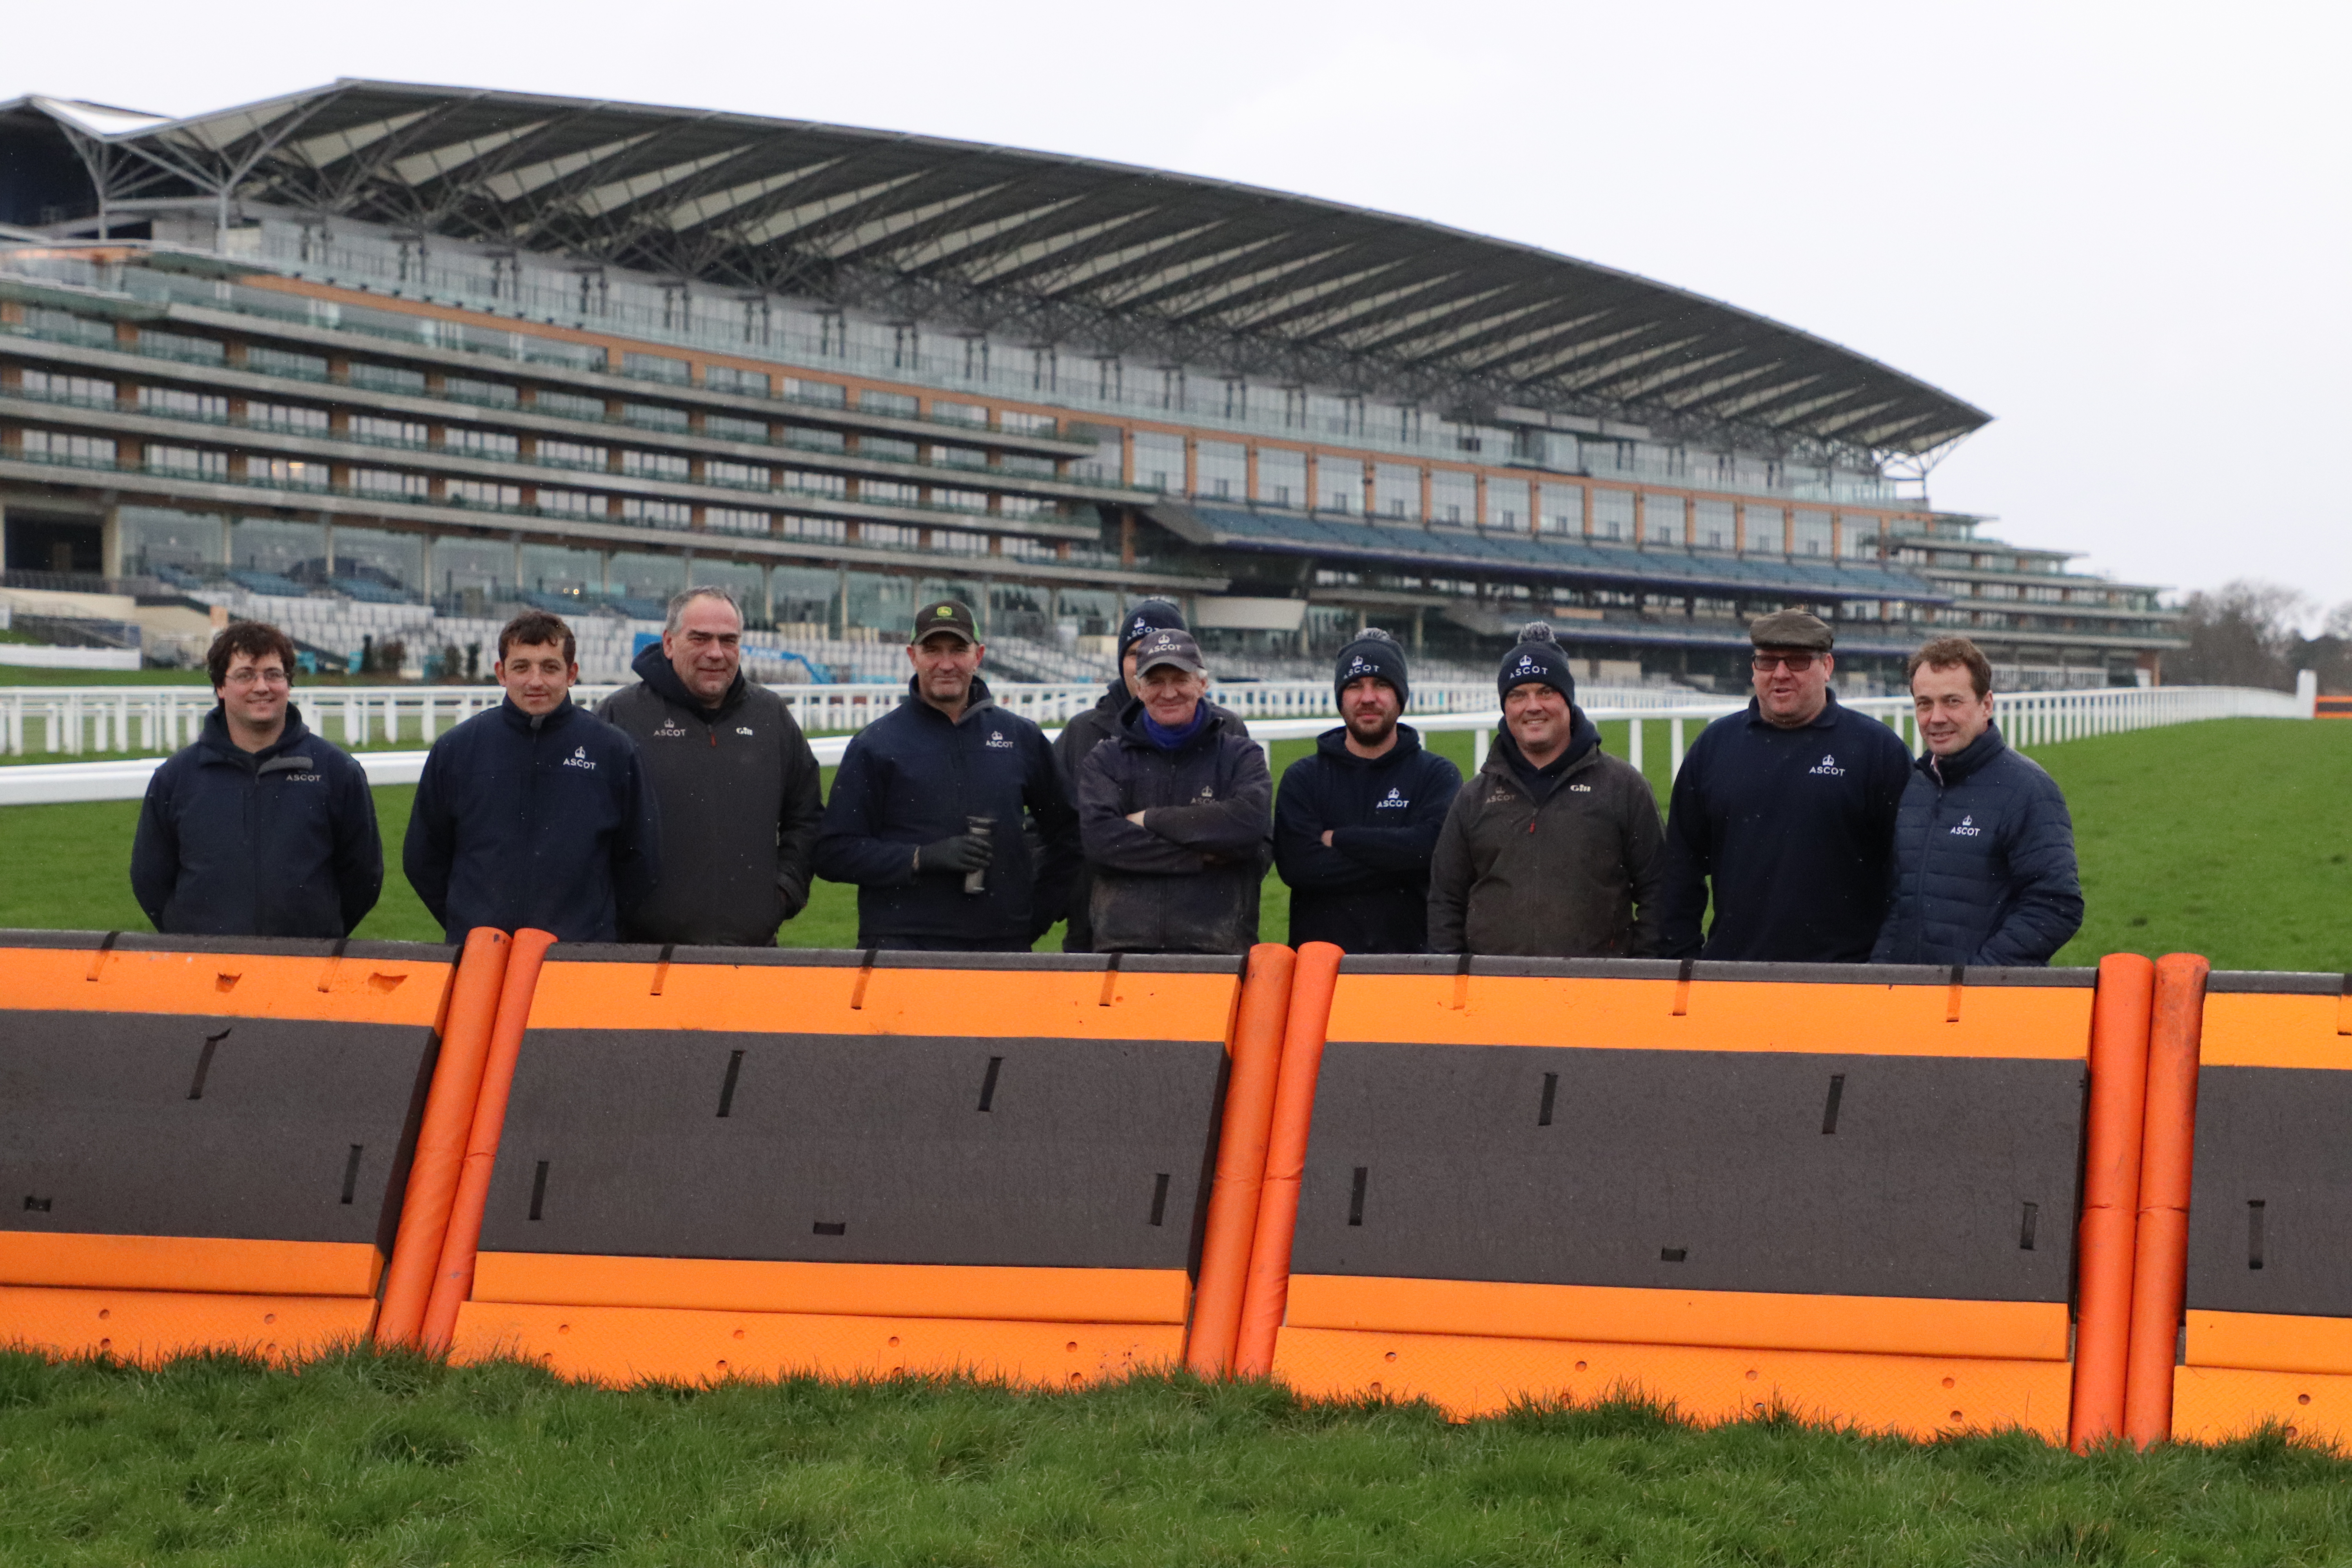 Ascot Racecourse - All in the planning Background